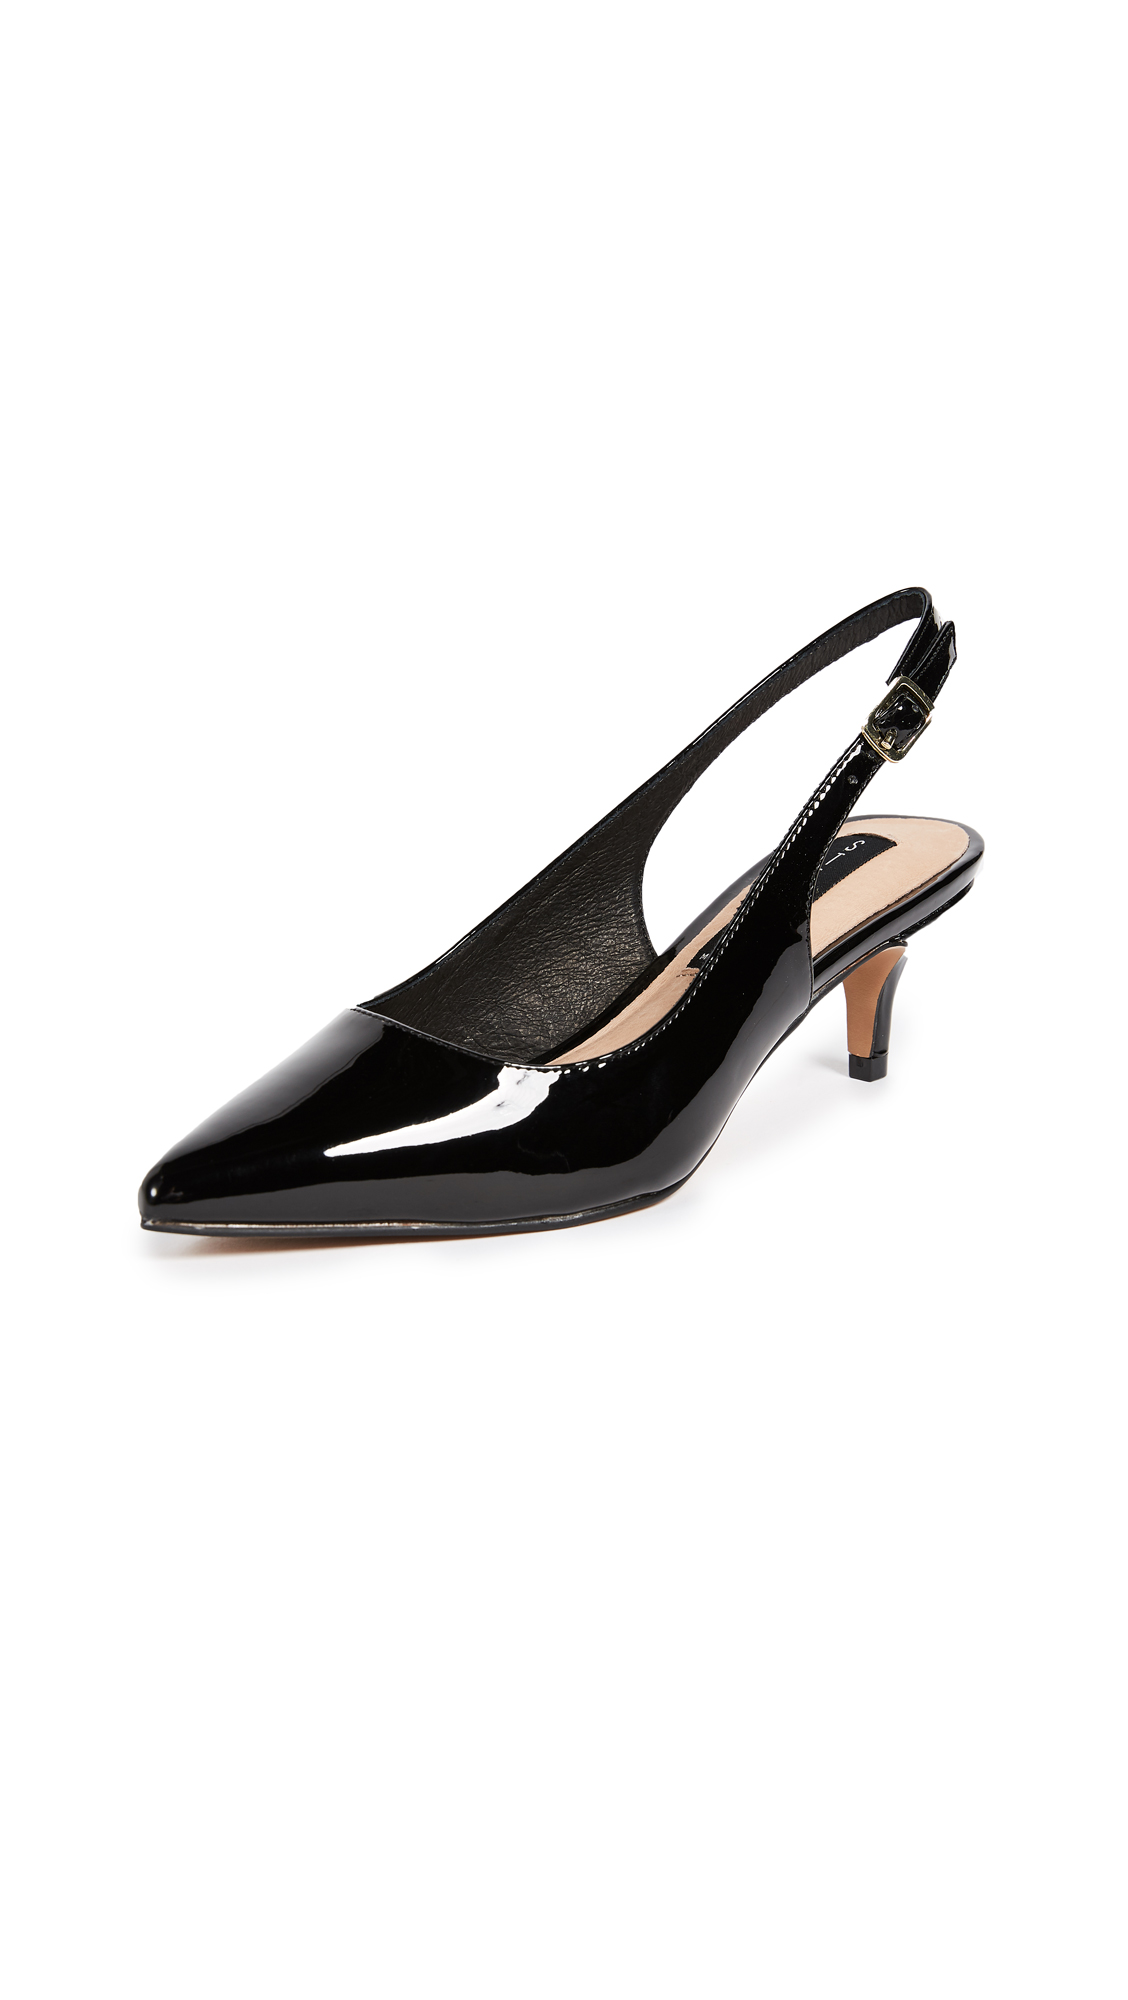 Steven Edyth Point Toe Slingback Pumps - Black